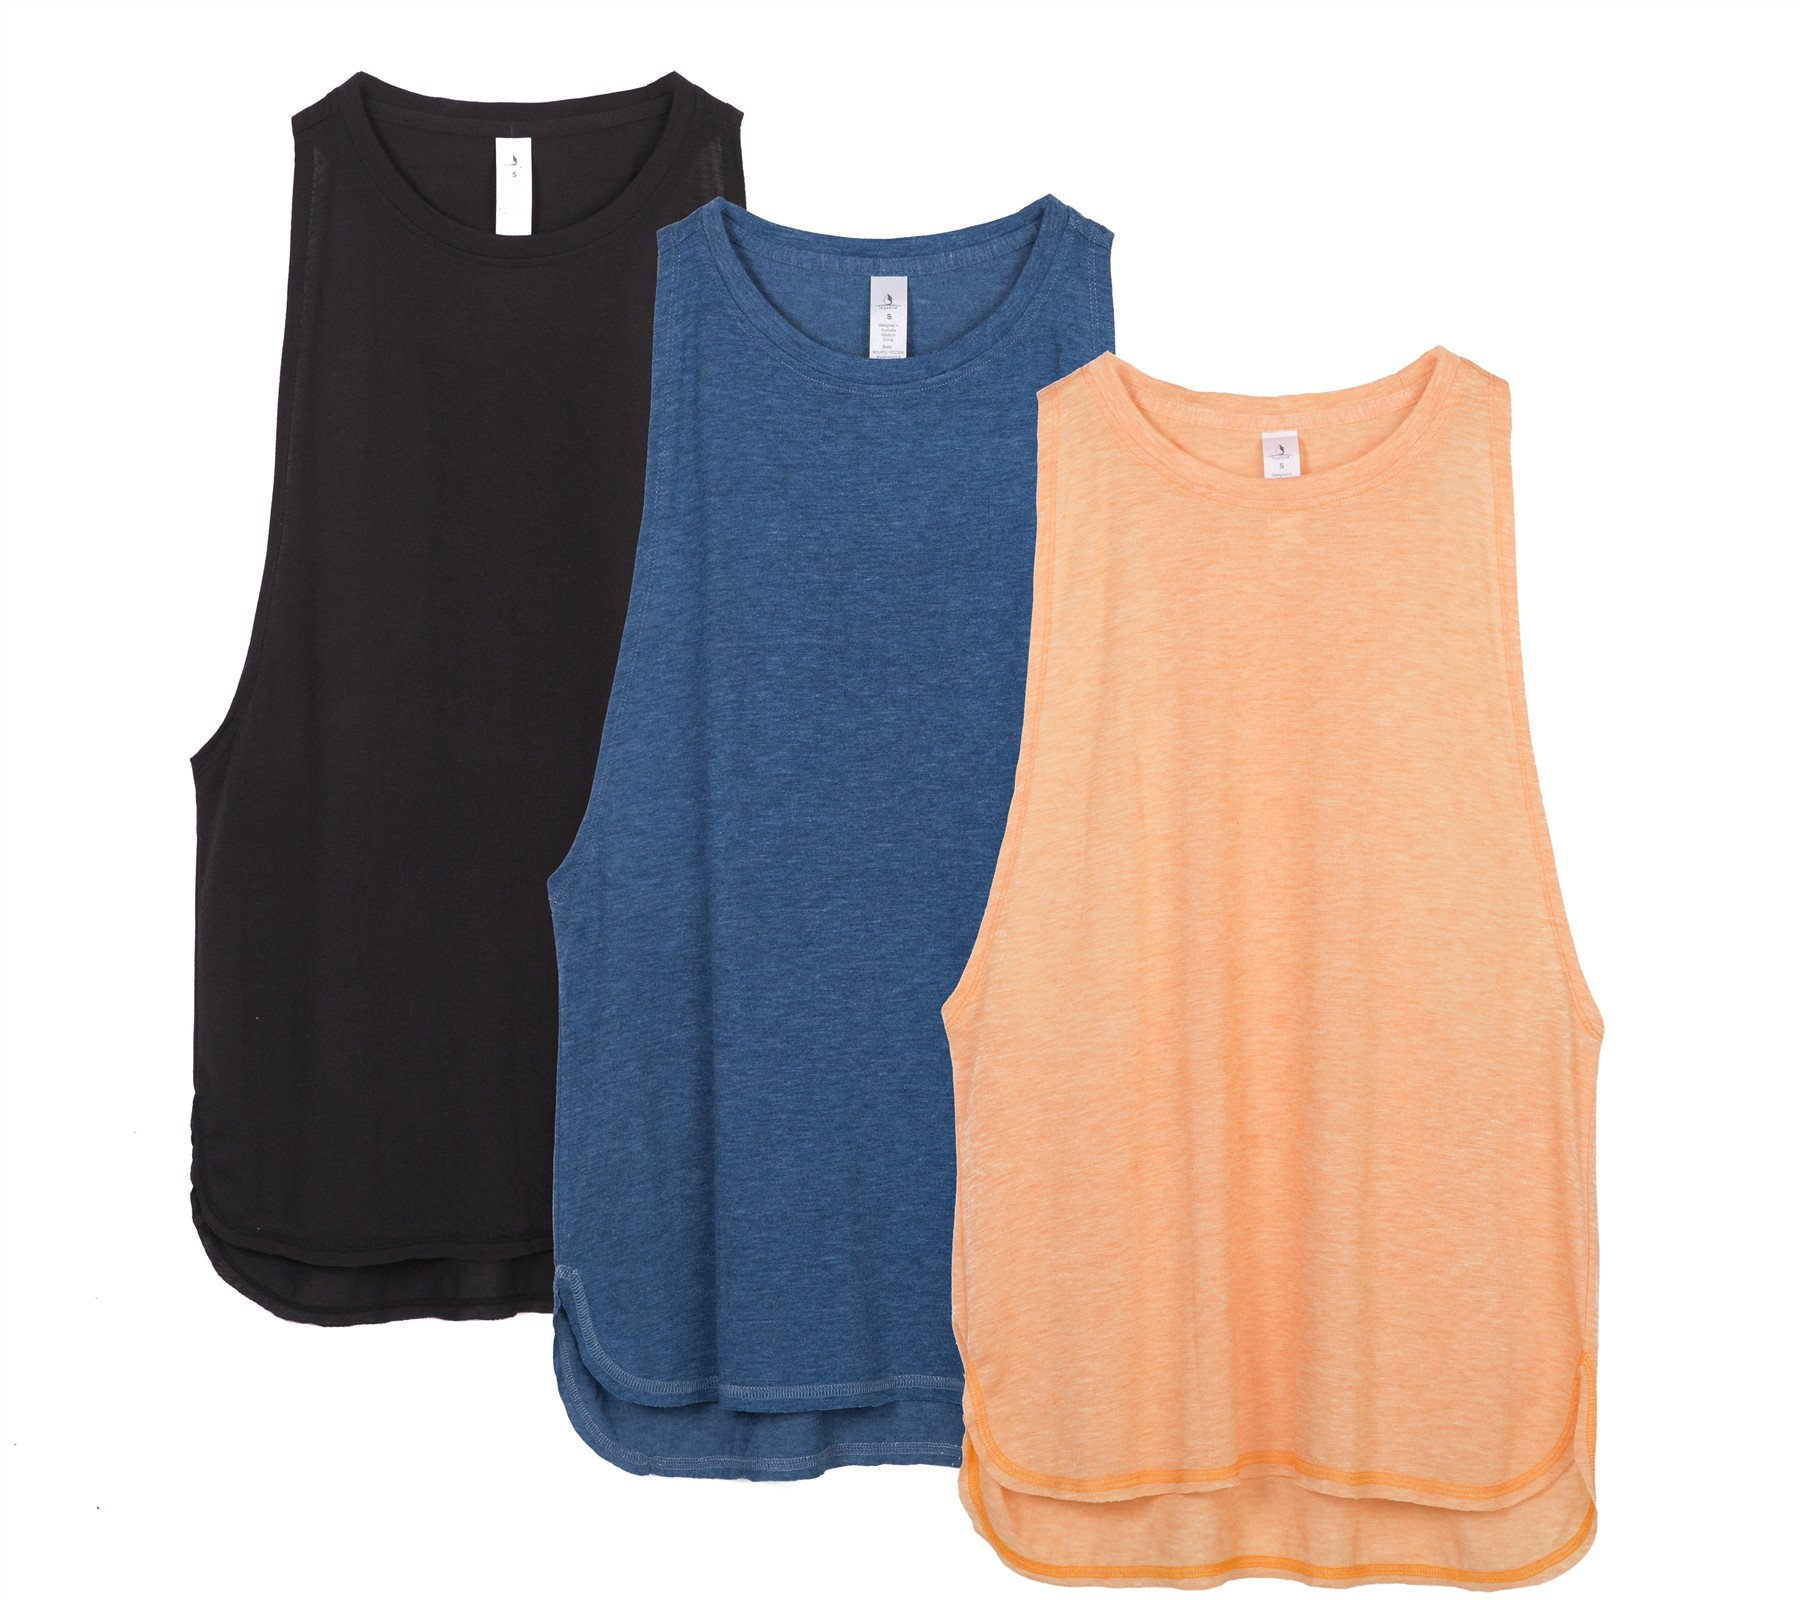 icyzone Workout Tank Tops for Women - Running Muscle Tank Sport Exercise Gym Yoga Tops Running Muscle Tanks(Pack of 3) (XS, Black/Denim/Pumpkin)